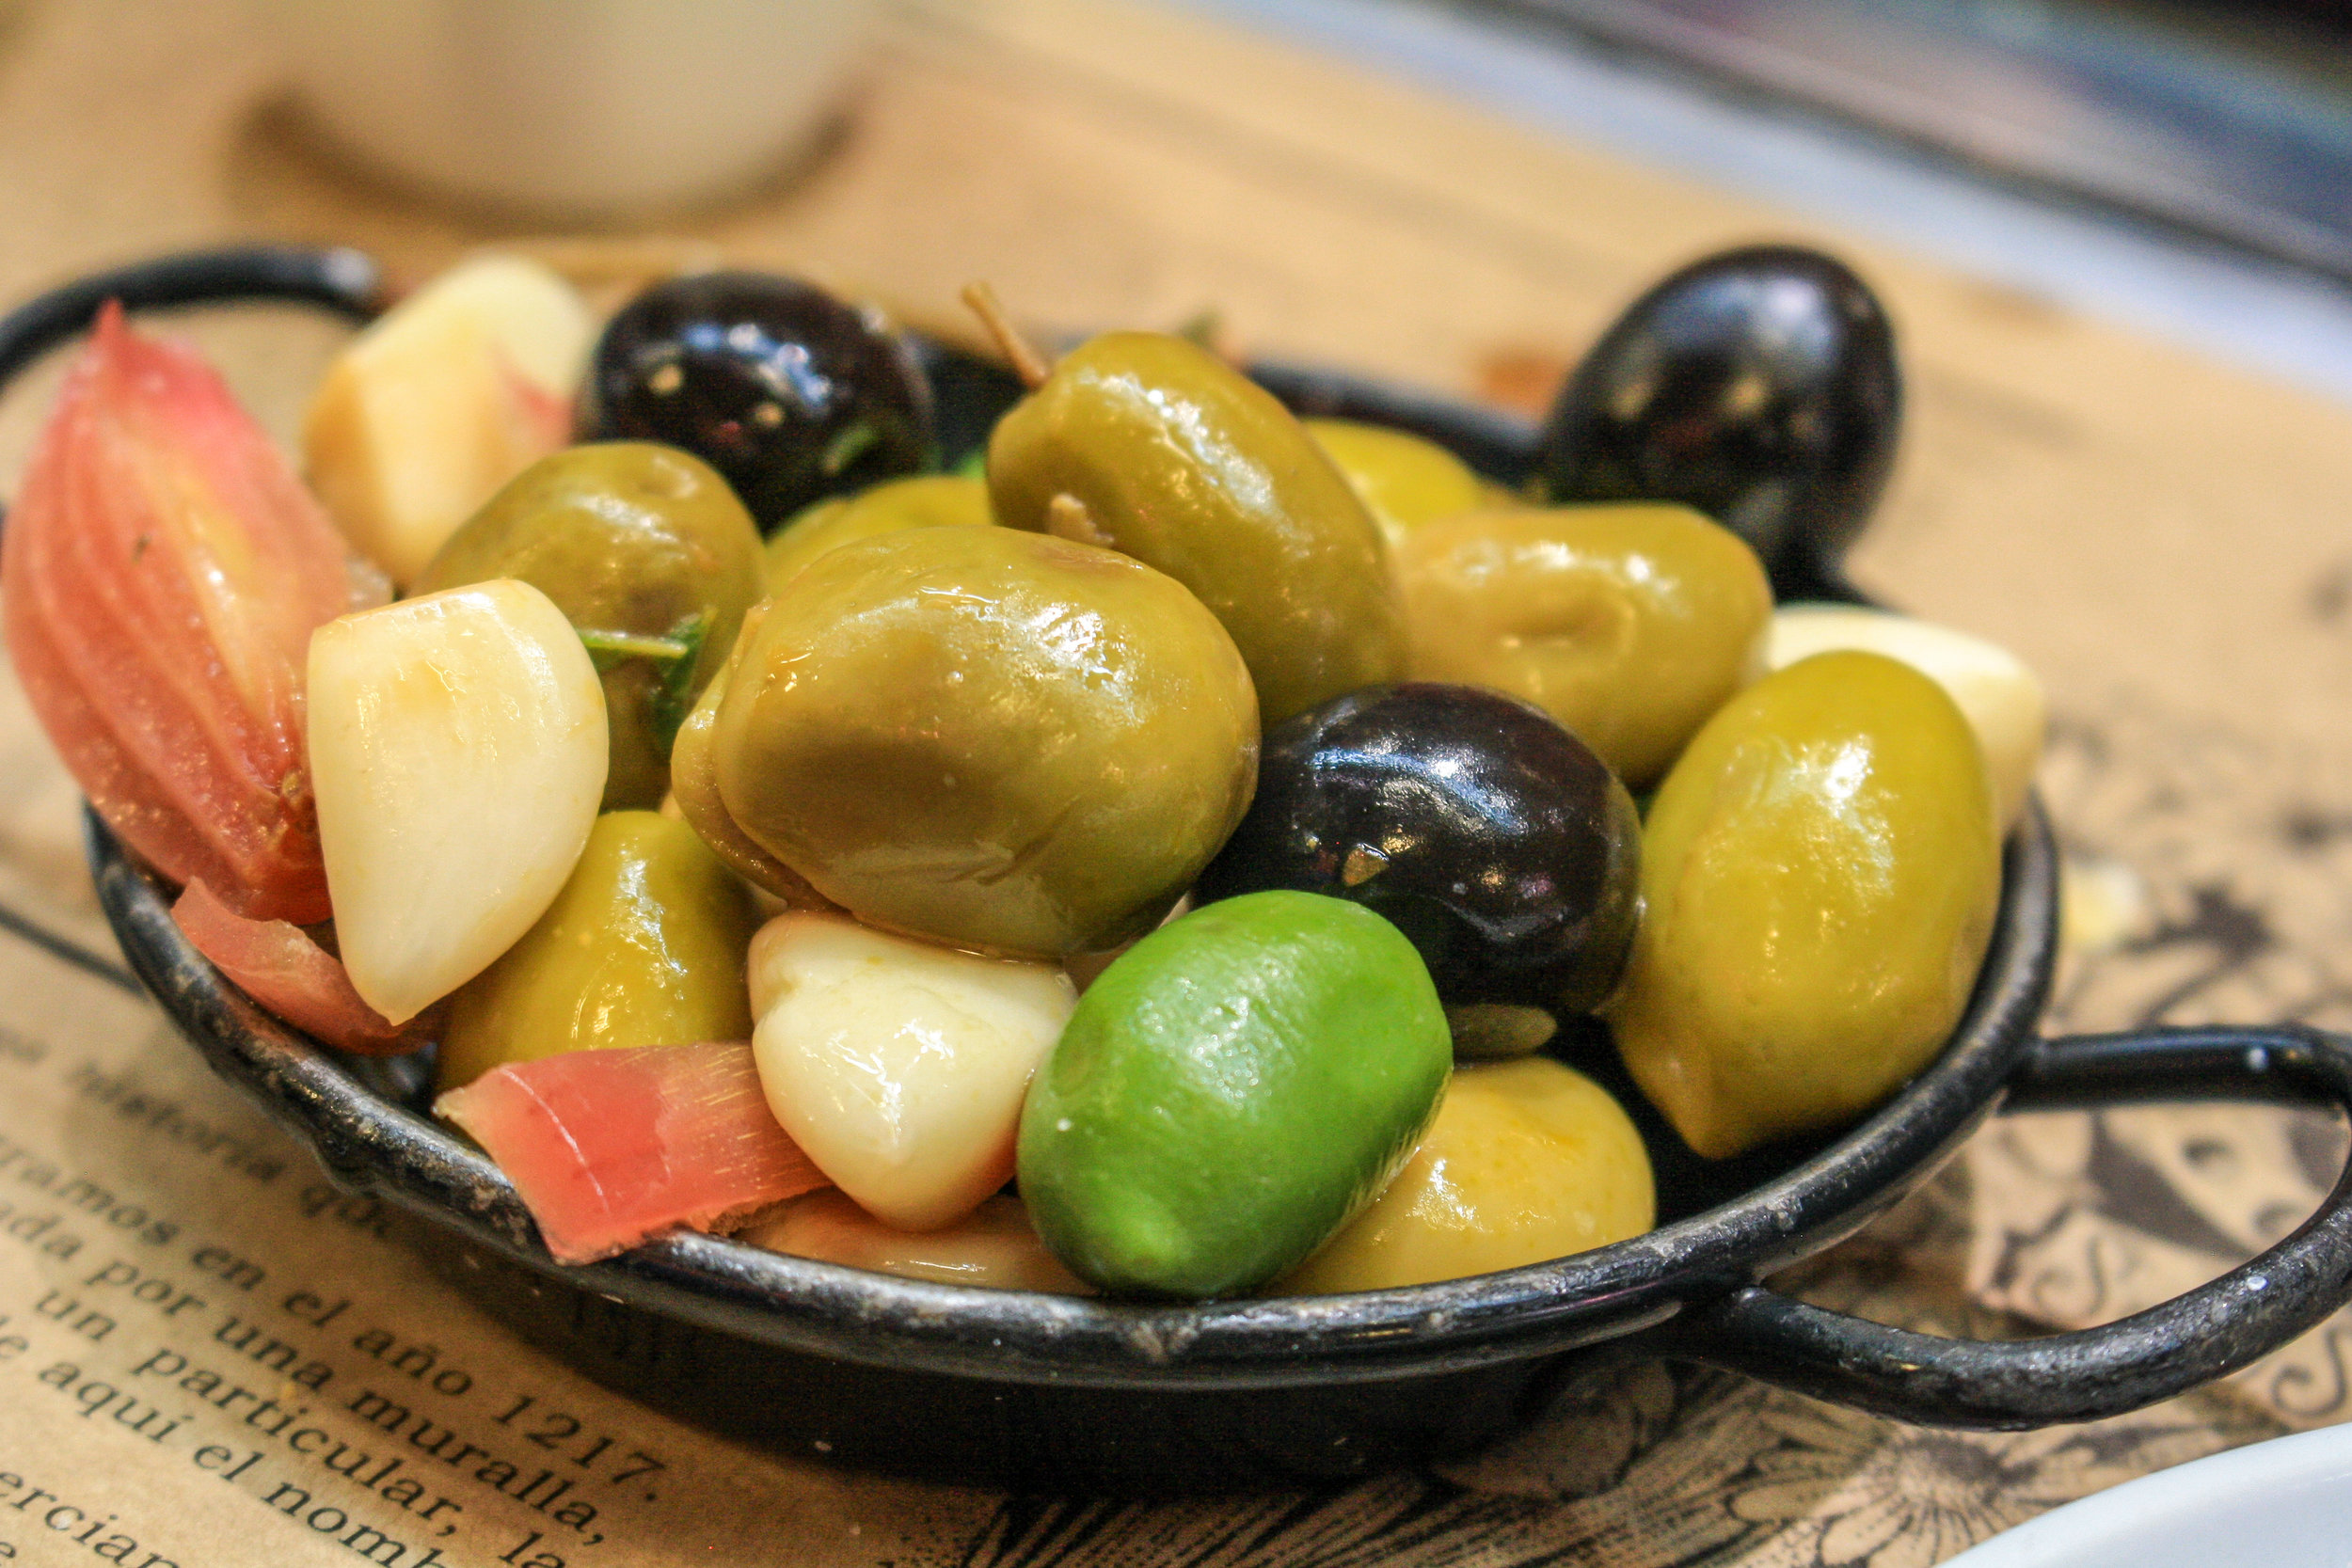 A tasty snack that's super healthy too–fresh olives in southern Spain.